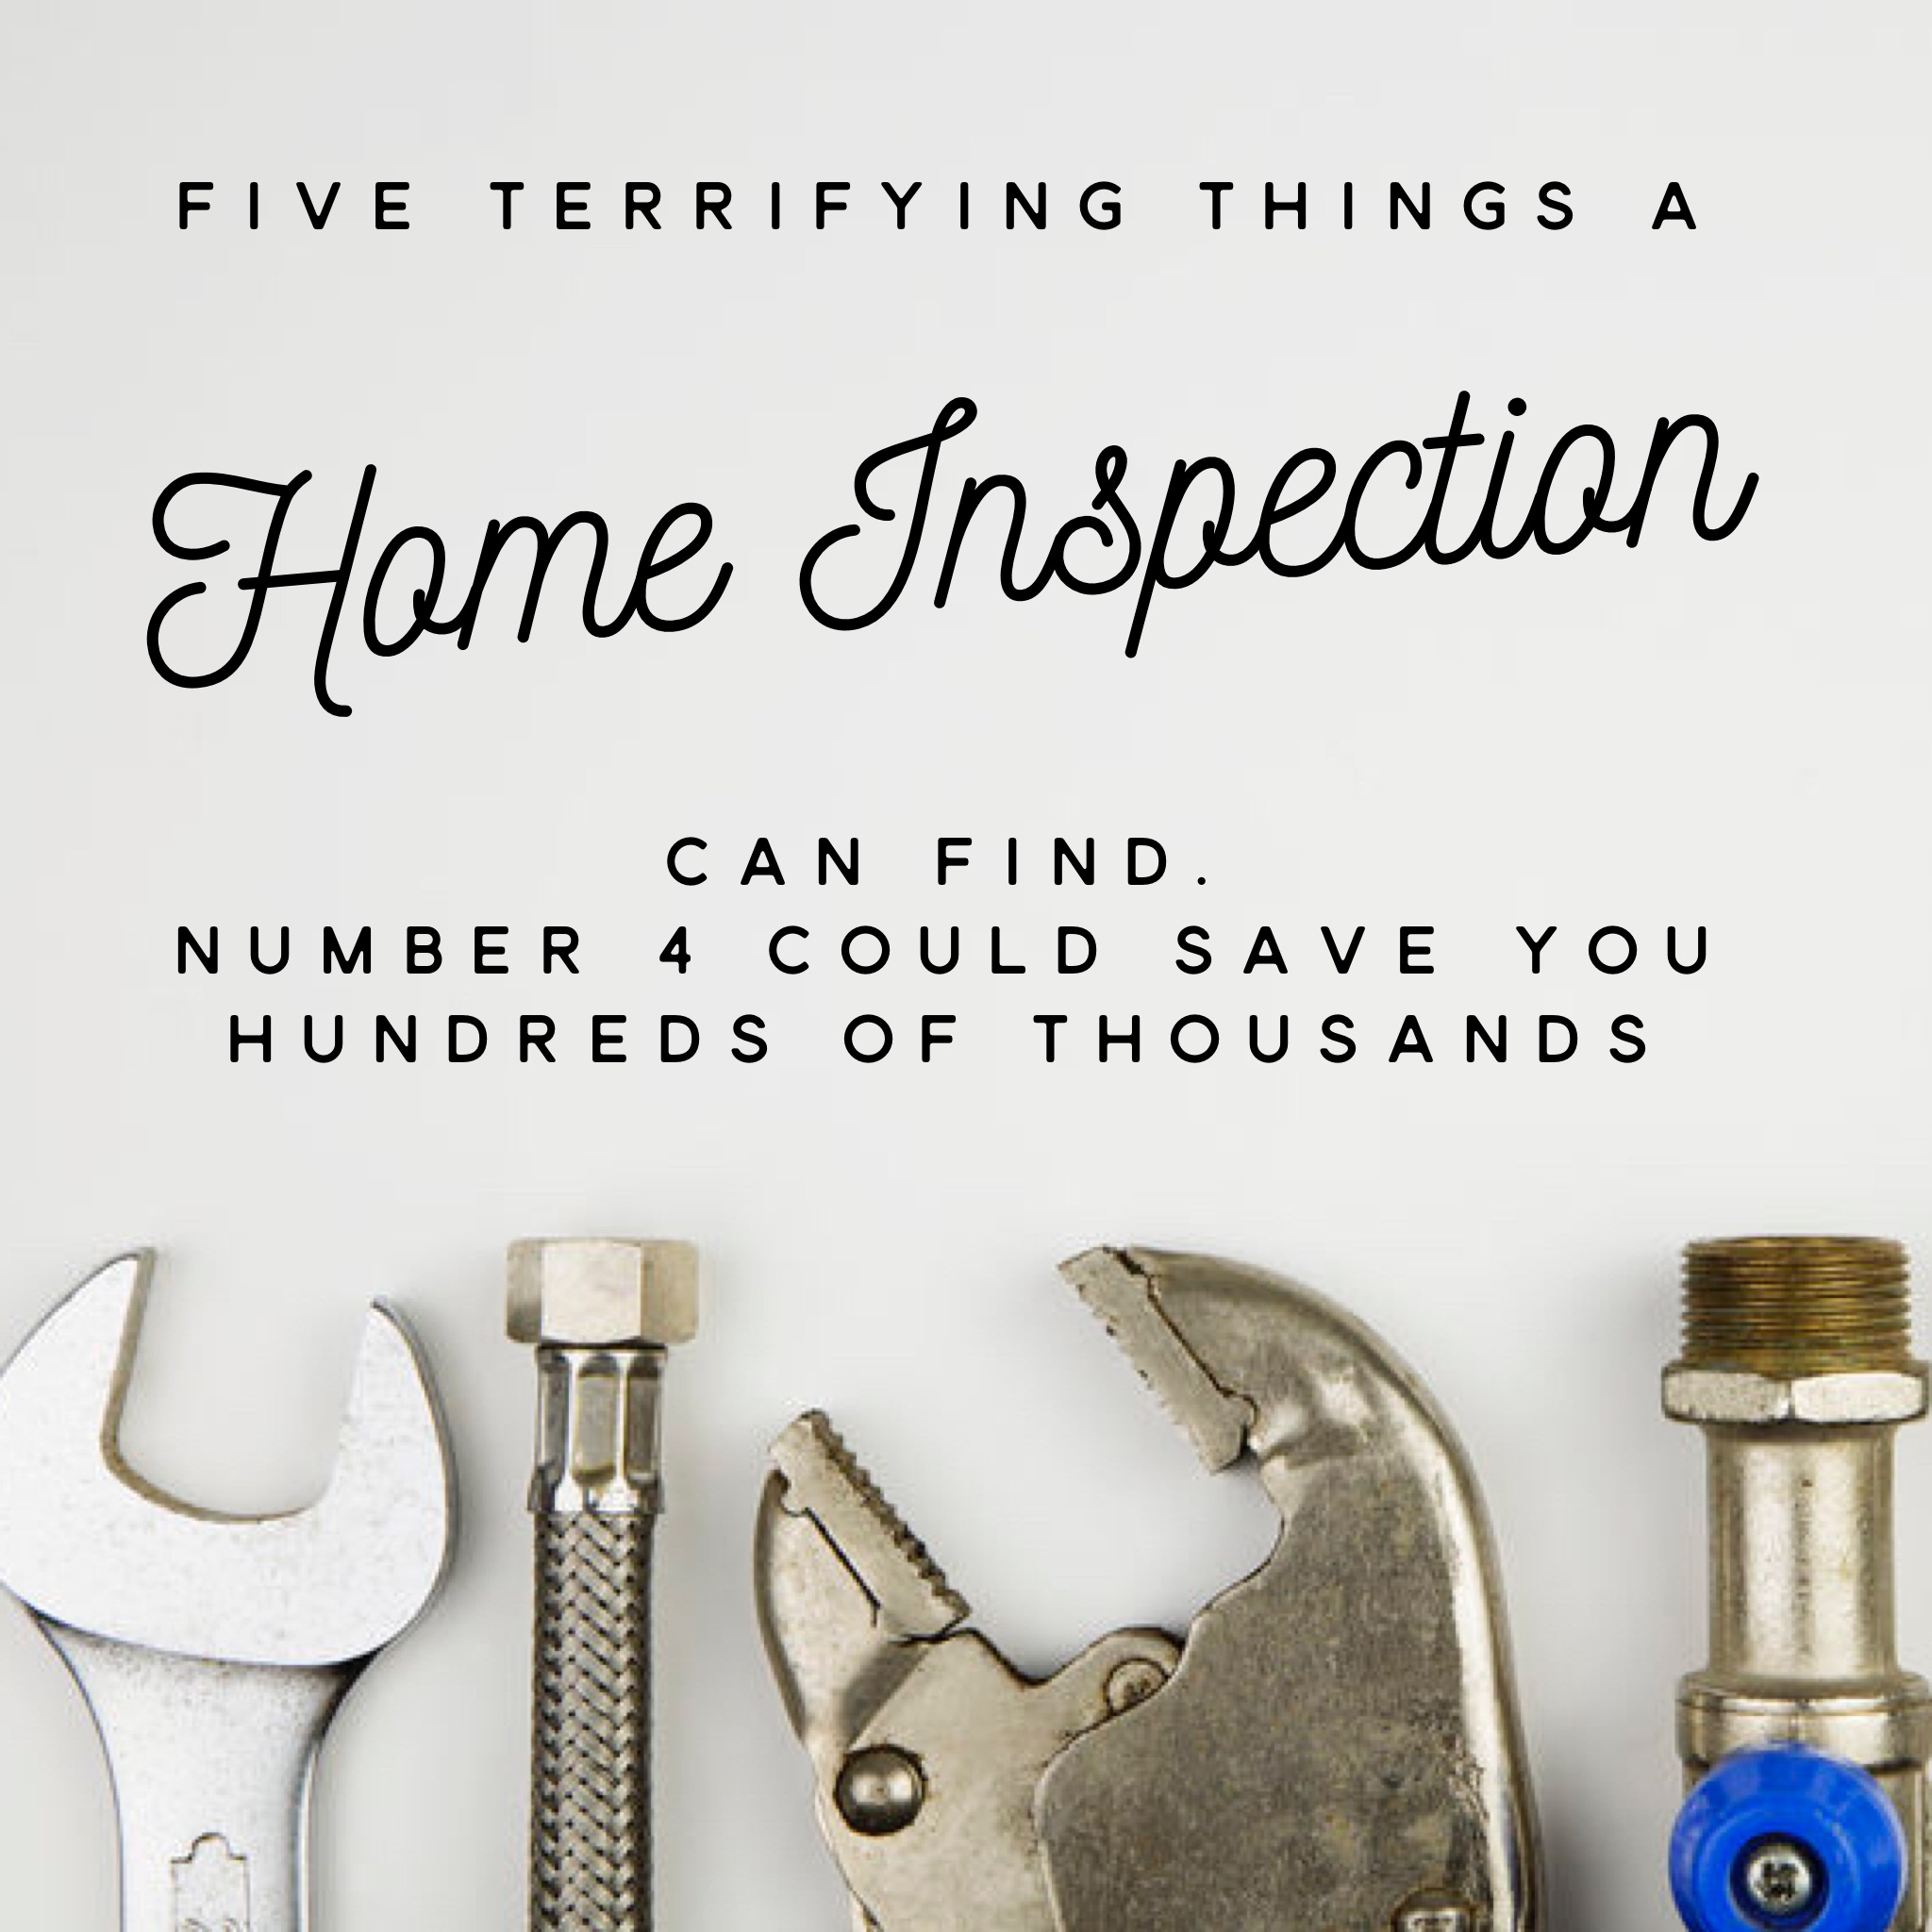 Five Terrifying Things A Home Inspection Can Find. Number 4 Could Save You Hundreds Of Thousands!